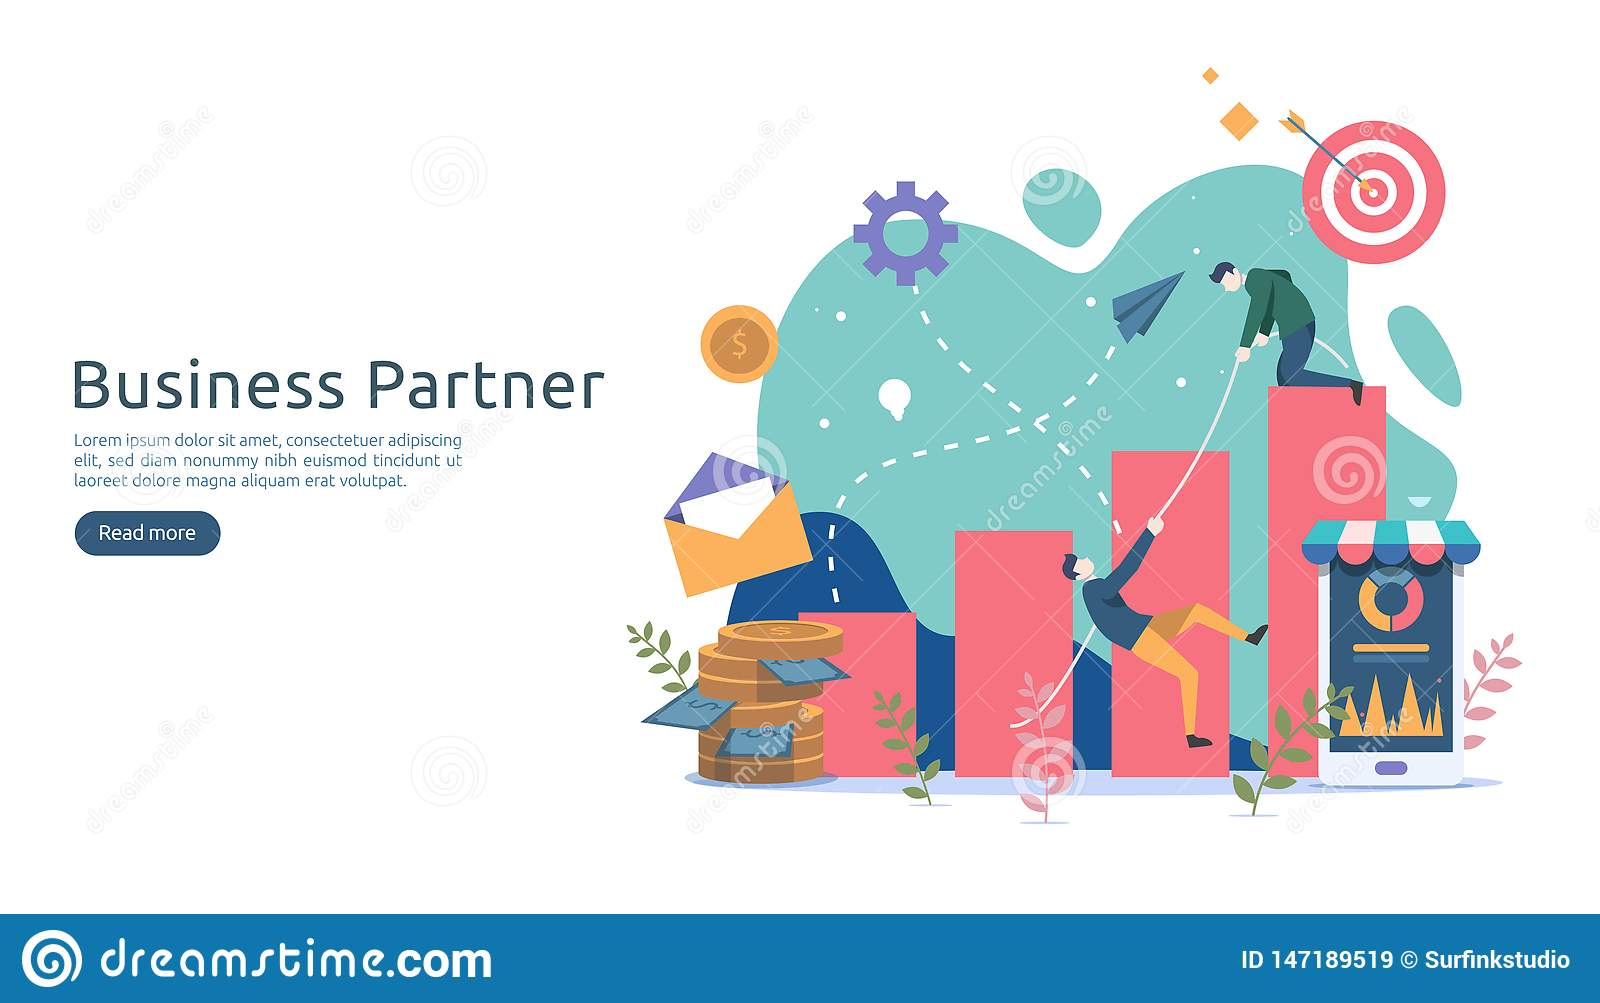 Business partnership relation concept idea with tiny people character. team working partner together template for web landing page